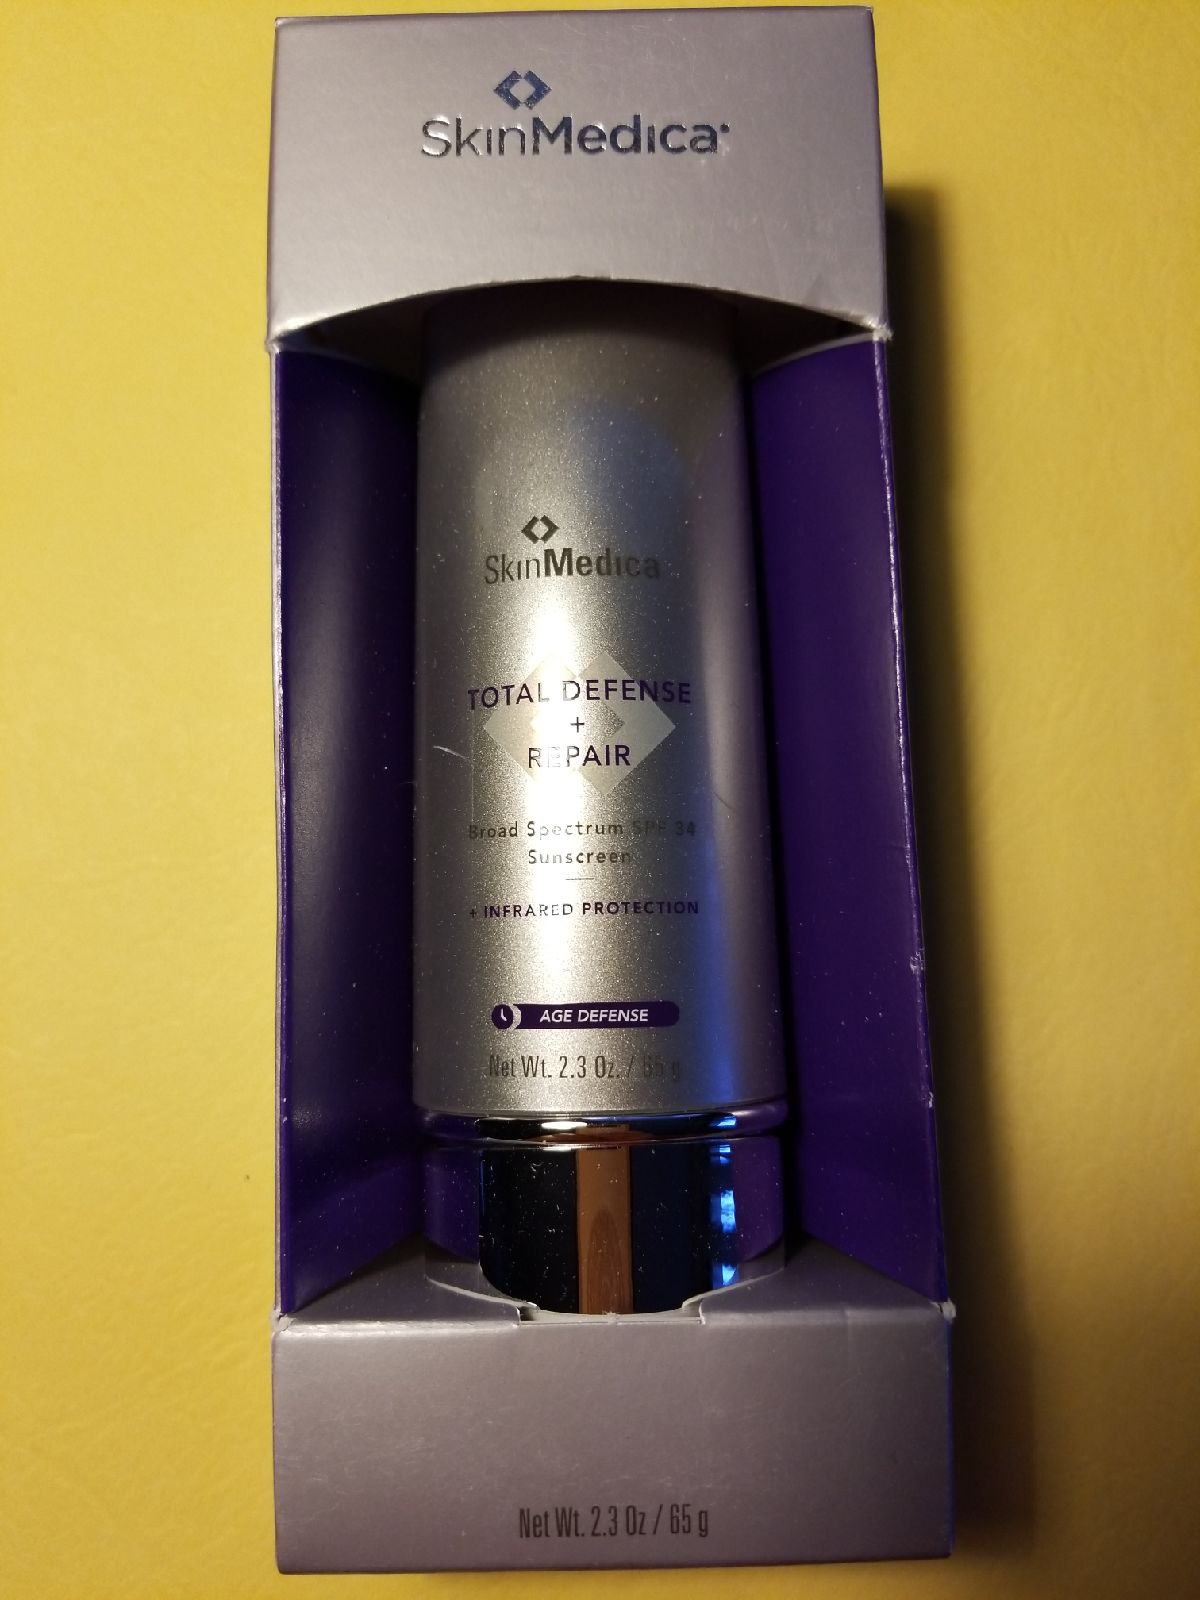 SkinMedica Total Defense and Repair SPF